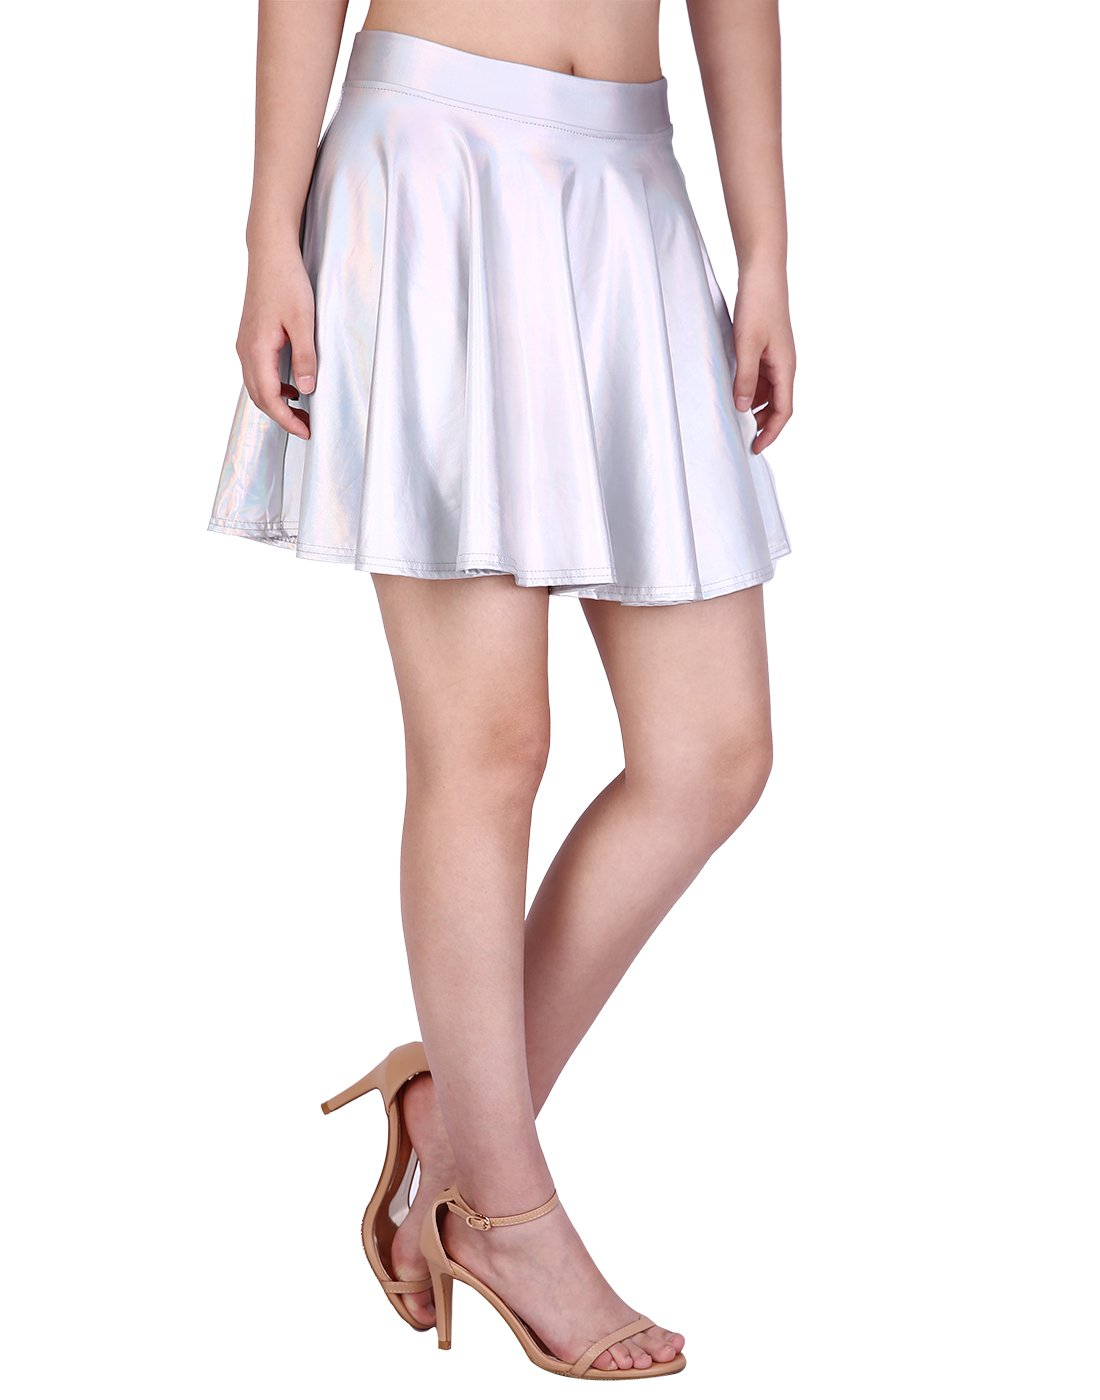 HDE Women's Casual Fashion Flared Pleated A-Line Circle Skater Skirt (Holographic, XX-Large)